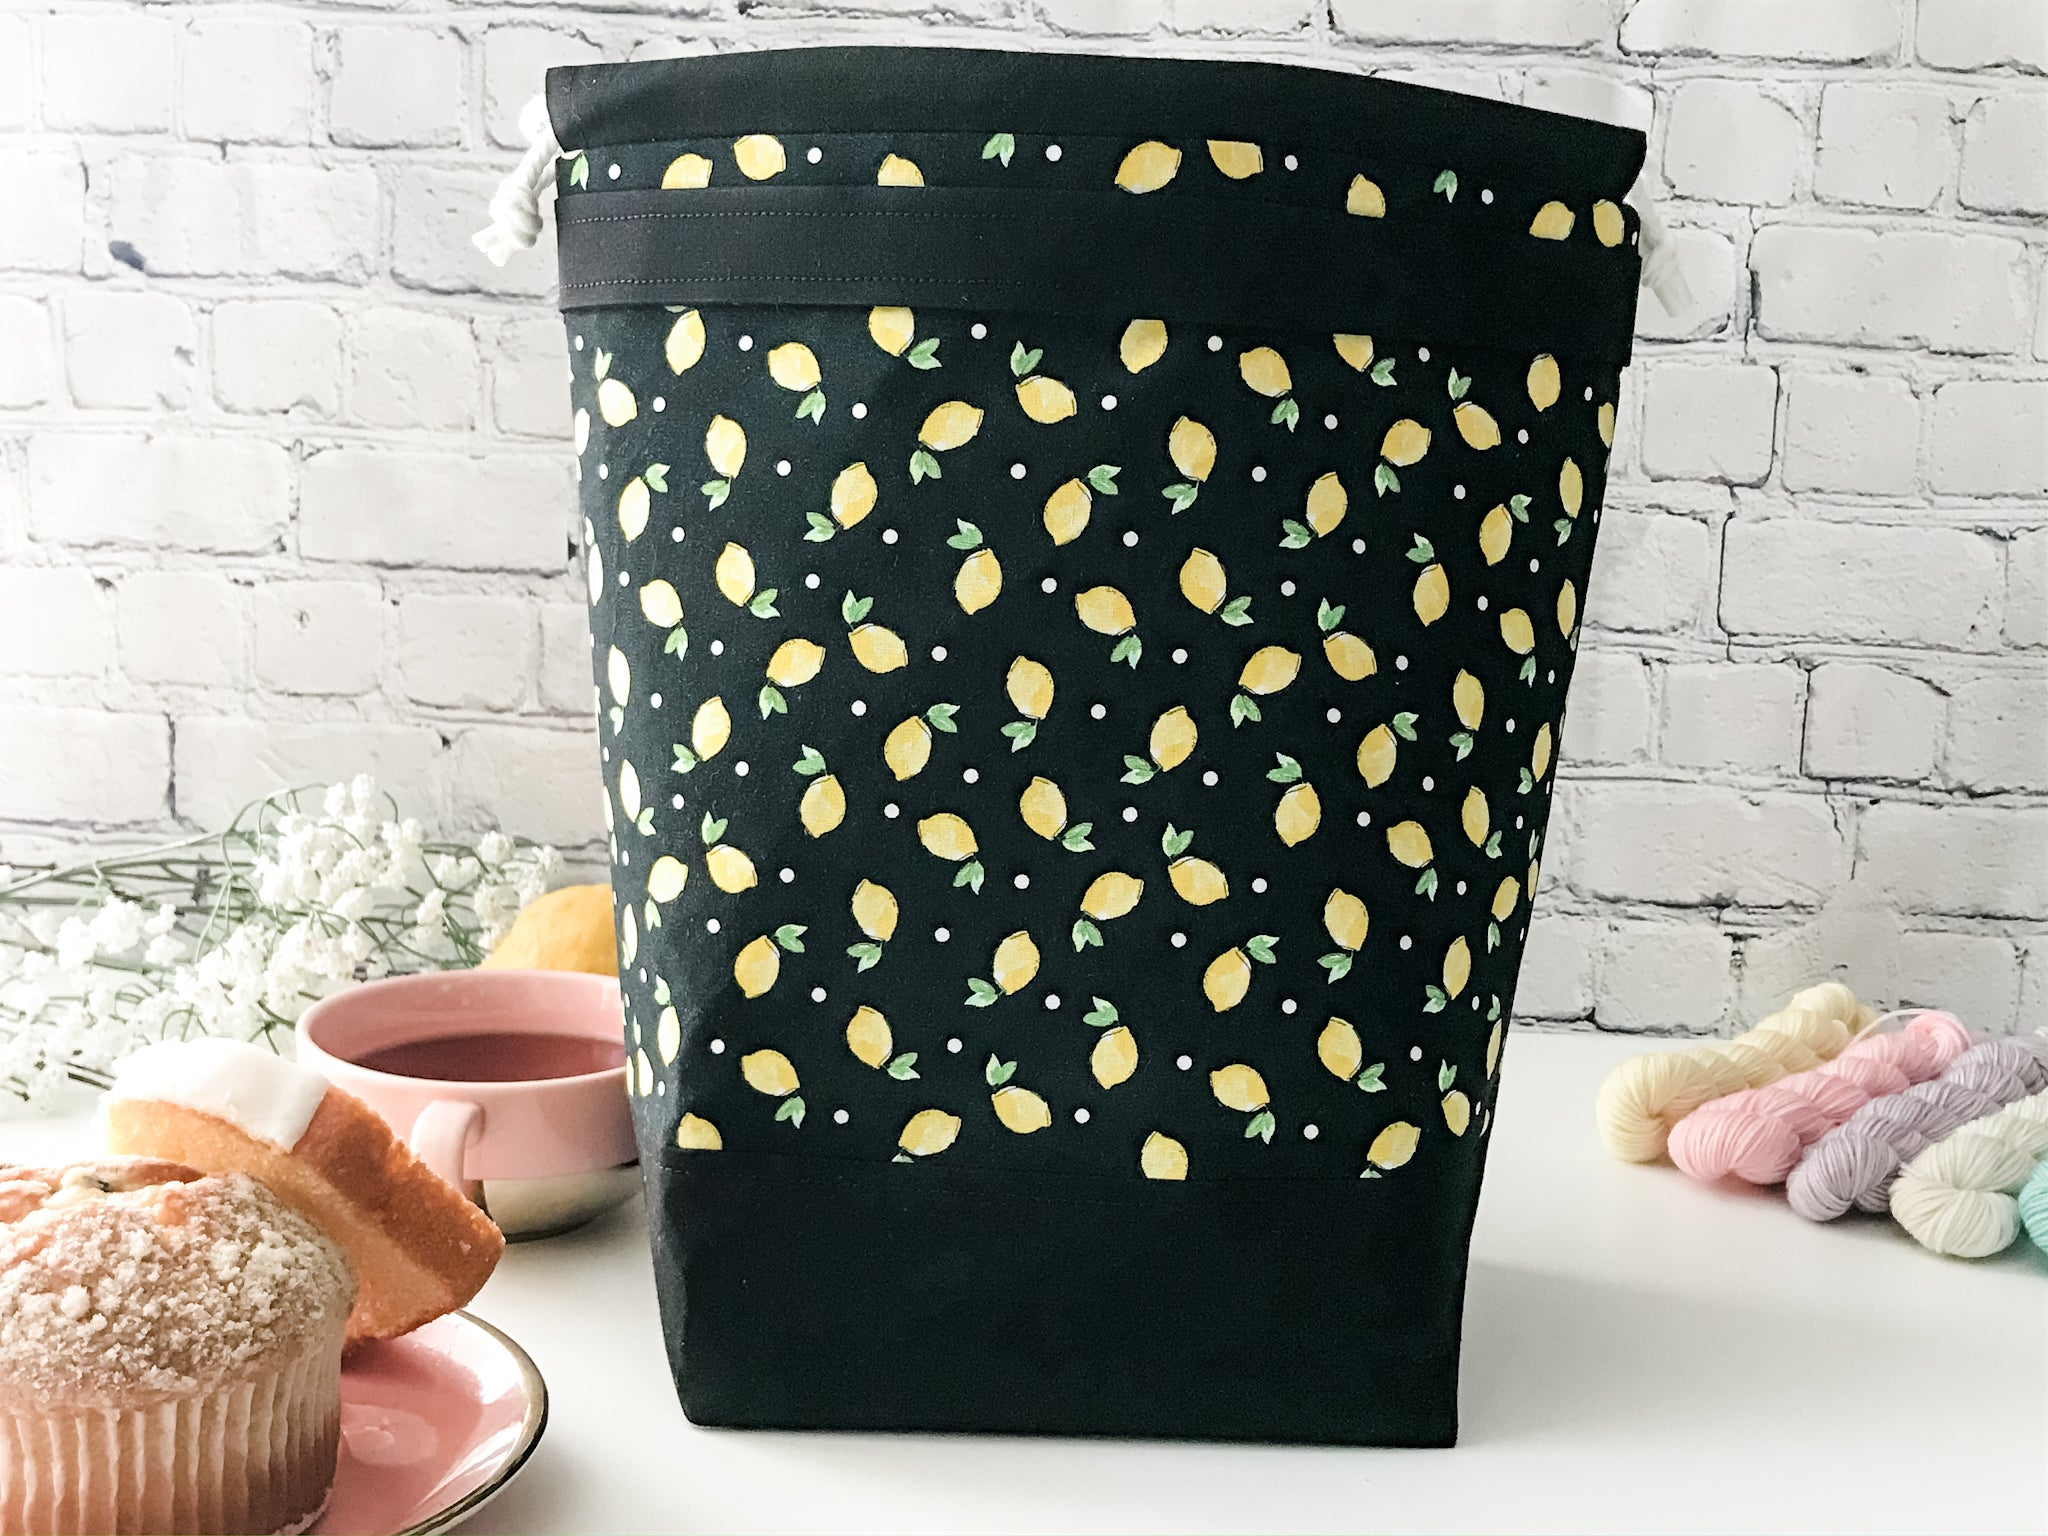 Grab n' Go:  When Life Gives You Lemons Drawstring Project Bag - The Handmaker's Bag